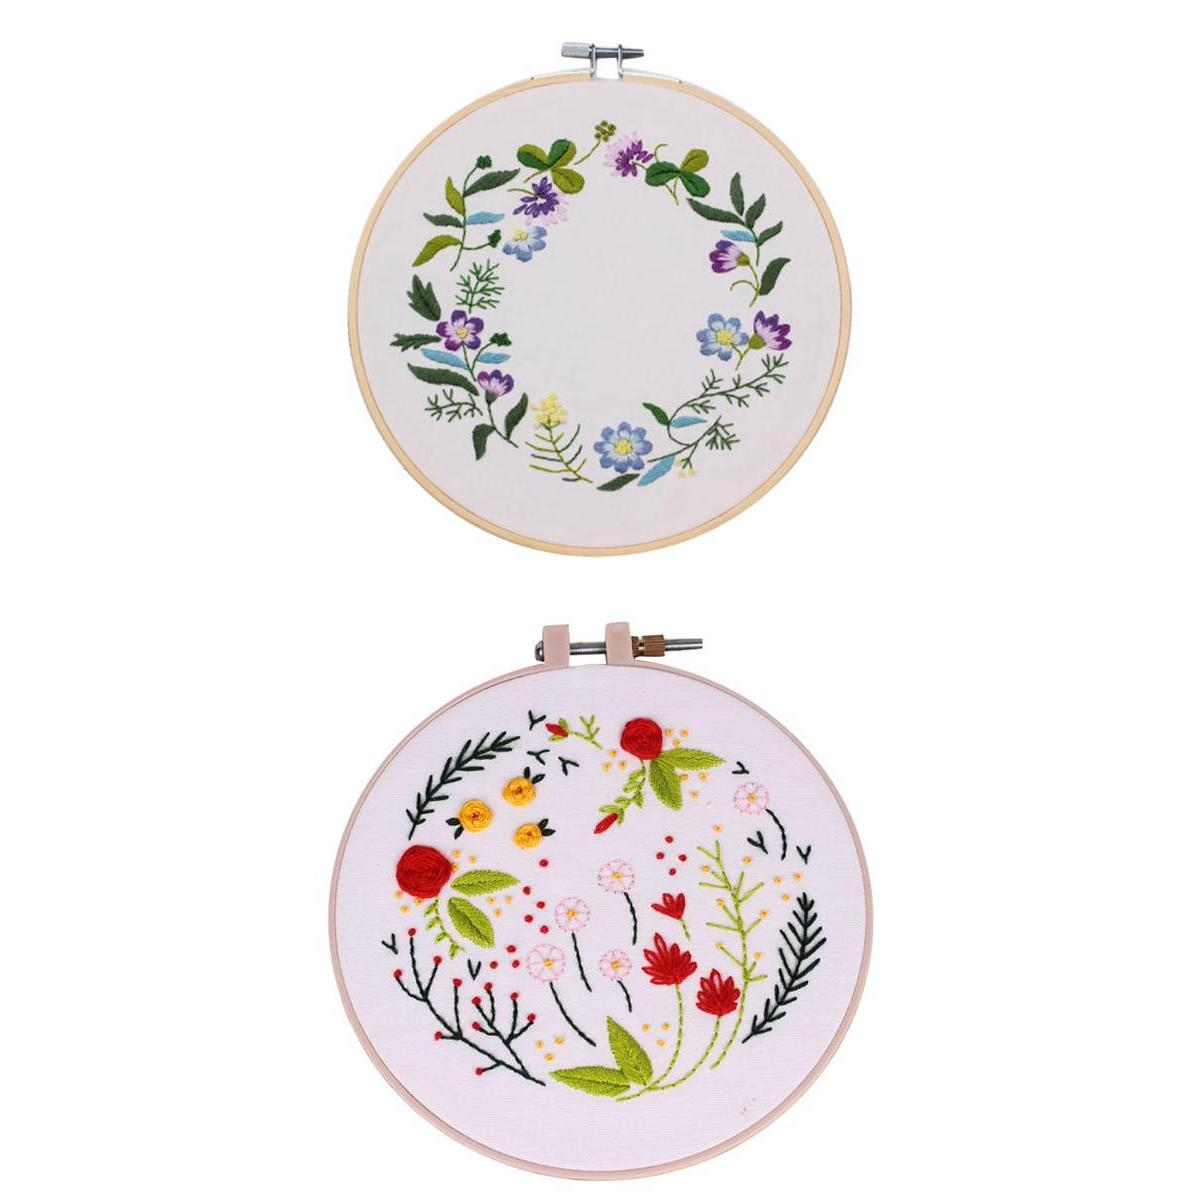 2Pcs Hand Embroidery Cross Stitch Patterns Sampler Kit for Beginners Craft